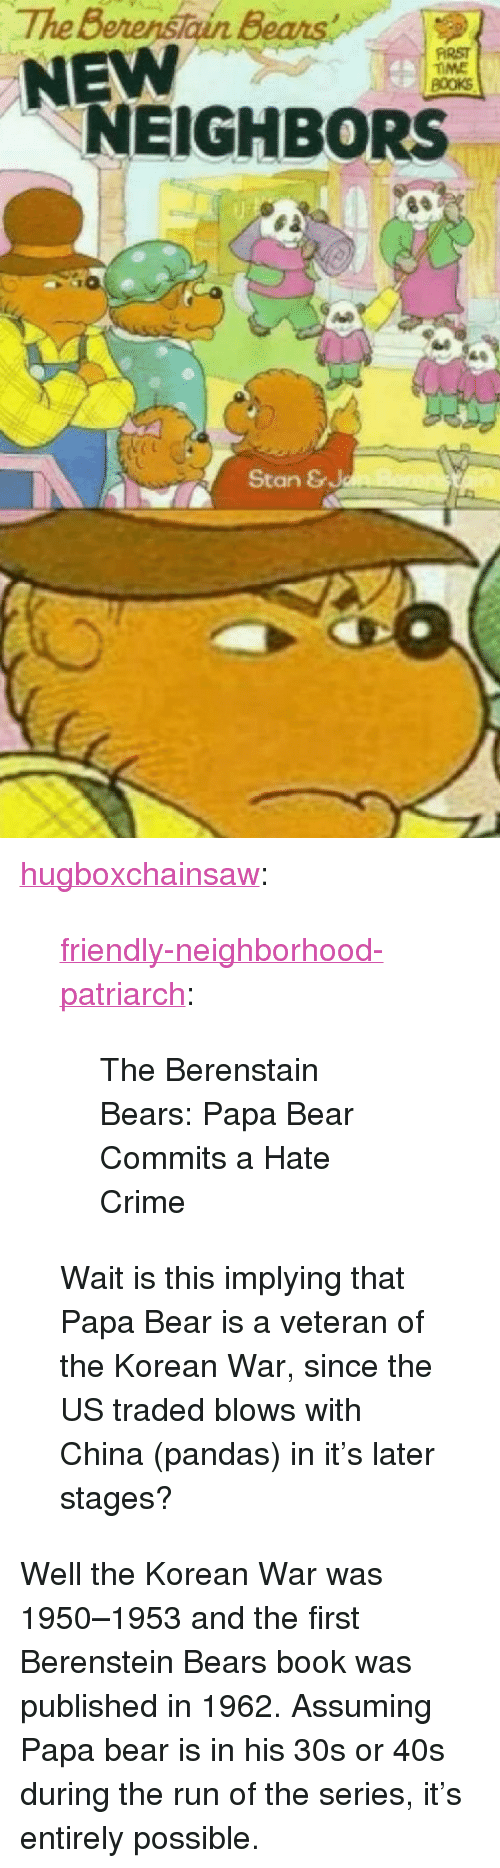 "Berenstain Bears, Crime, and Run: The Berenstain Bears  NEW  FİRST  TIME  NEIGHBORS  4  Stan & <p><a href=""https://hugboxchainsaw.tumblr.com/post/174255281867/friendly-neighborhood-patriarch-the-berenstain"" class=""tumblr_blog"">hugboxchainsaw</a>:</p>  <blockquote><p><a href=""http://friendly-neighborhood-patriarch.tumblr.com/post/173865249382/the-berenstain-bears-papa-bear-commits-a-hate"" class=""tumblr_blog"">friendly-neighborhood-patriarch</a>:</p> <blockquote><p>The Berenstain Bears: Papa Bear Commits a Hate Crime</p></blockquote> <p>Wait is this implying that Papa Bear is a veteran of the Korean War, since the US traded blows with China (pandas) in it's later stages?</p></blockquote>  <p>Well the Korean War was 1950–1953 and the first Berenstein Bears book was published in 1962. Assuming Papa bear is in his 30s or 40s during the run of the series, it's entirely possible.</p>"